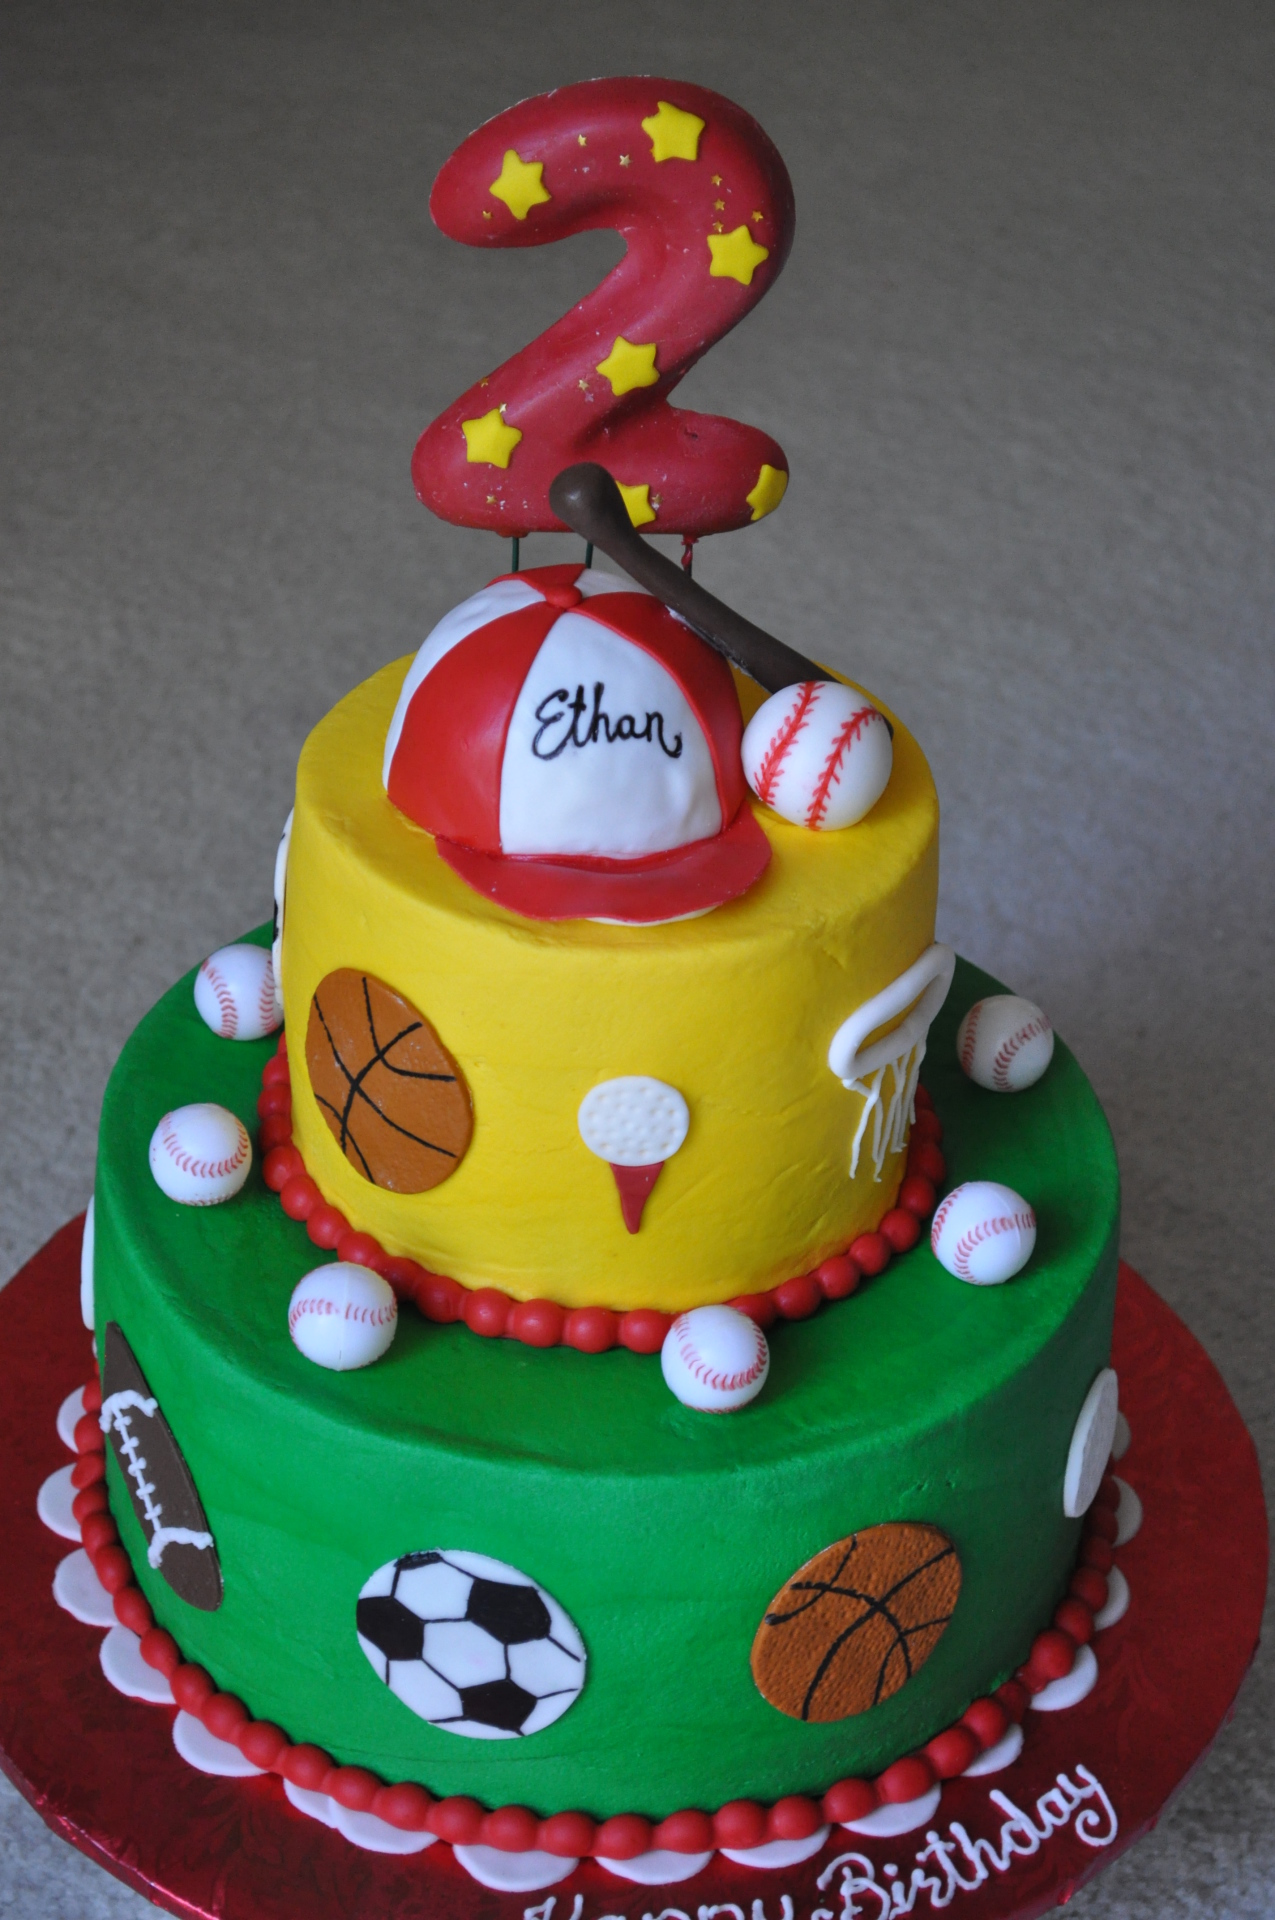 Sports theme birthday cake, 2nd birthday cake